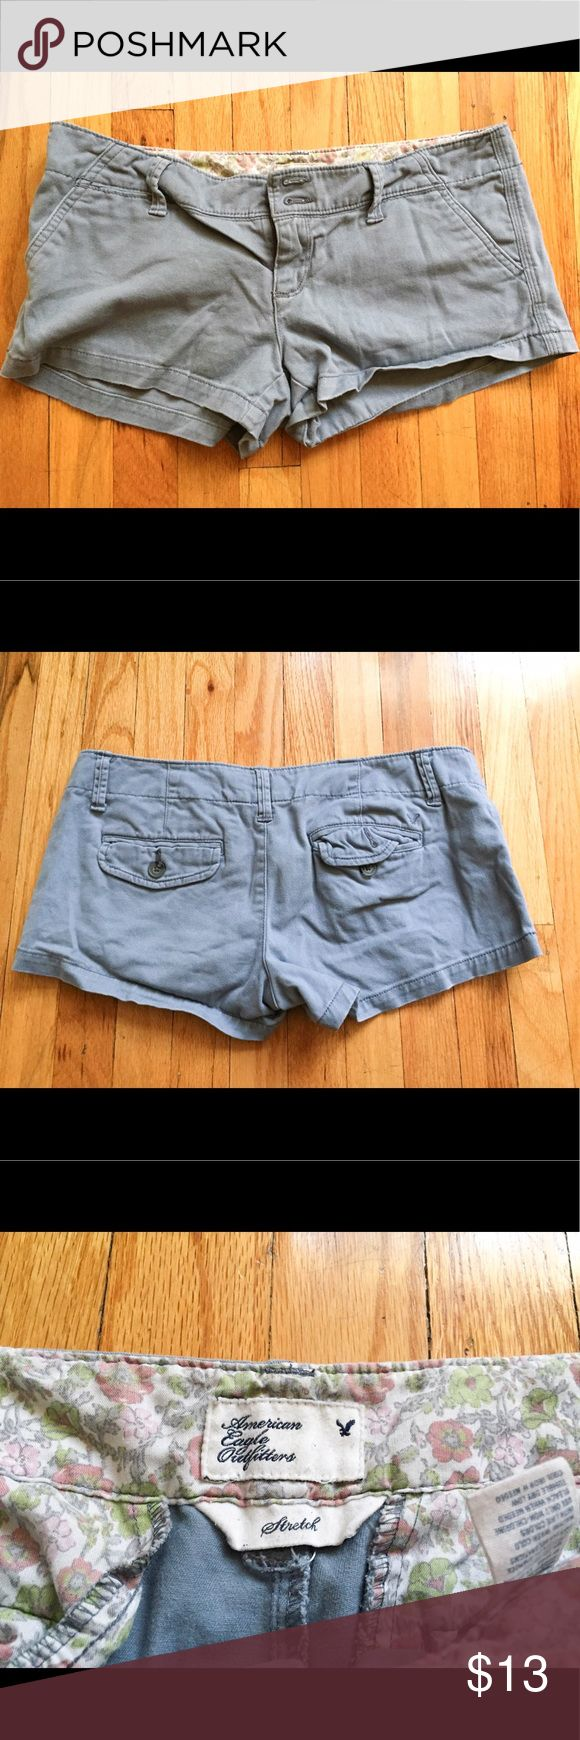 AMERICAN EAGLE OUTFITTERS 🦅 grey shorts ❗️CLOSET PURGE❗️ classic American eagle outfitters shorts in light gray. It's a size 27. It has some stretch to it as labeled. Pre-loved American Eagle Outfitters Shorts